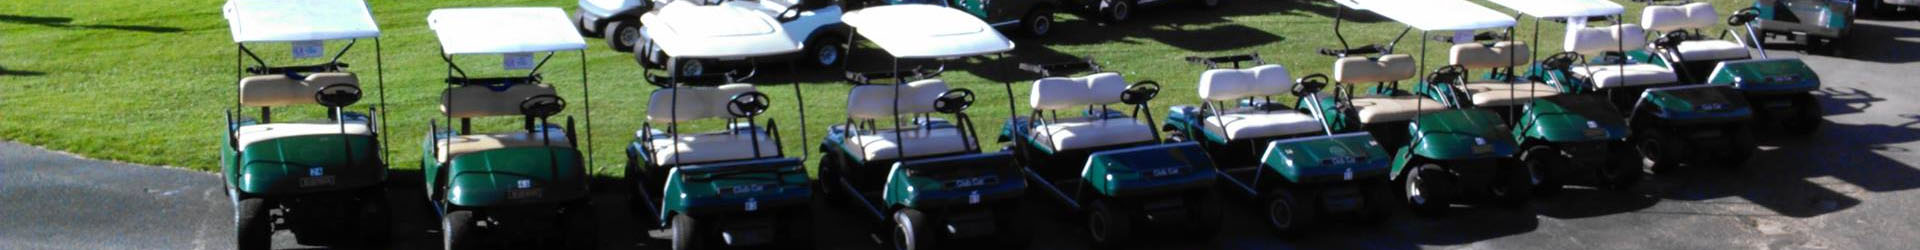 Outing Services at Manistee Golf and Country Club located on the Shores of Lake Michigan